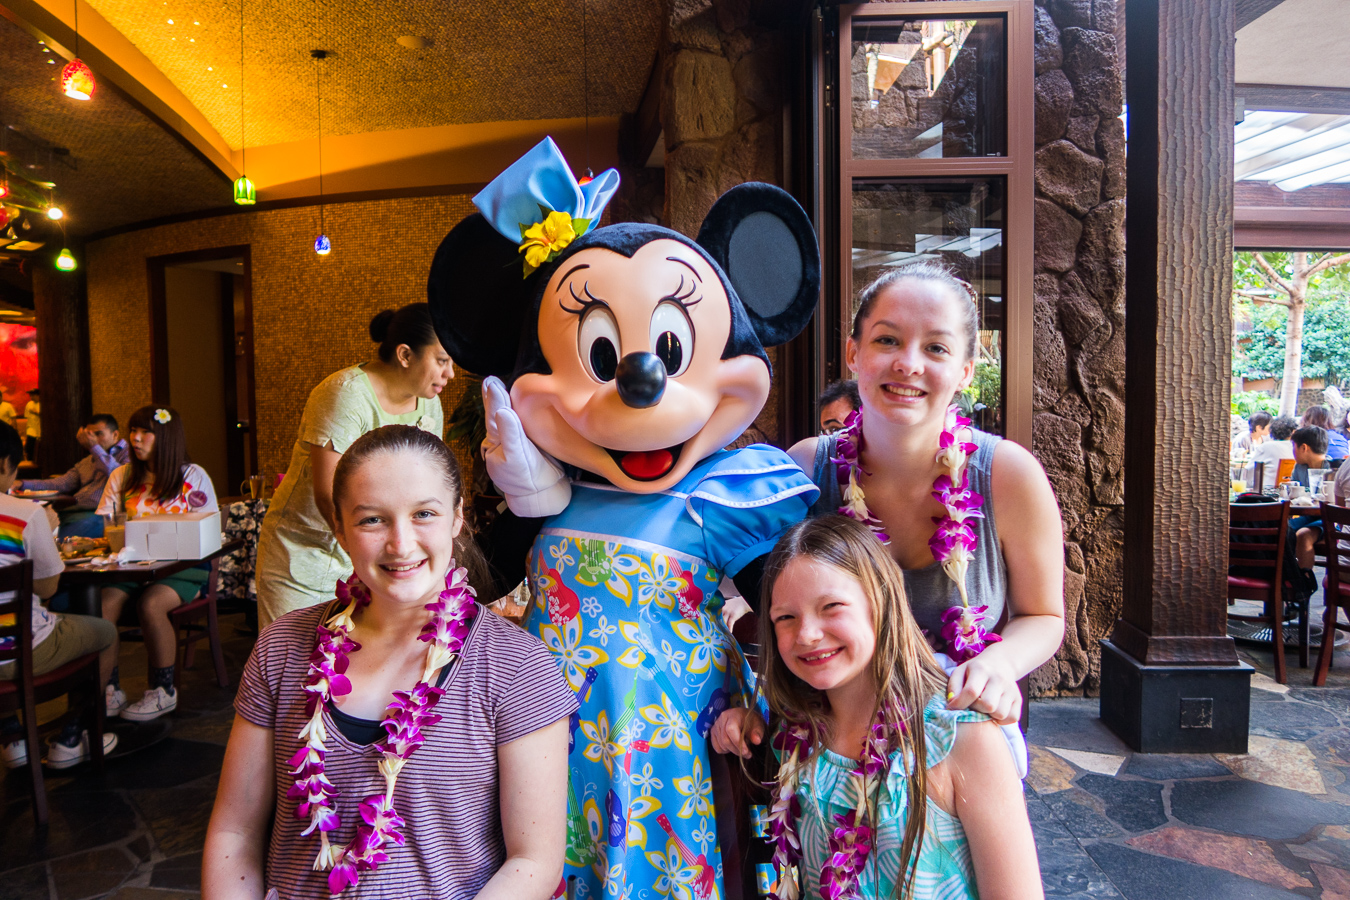 Three girls posing with Minnie Mouse at the breakfast buffet at Disney's Aulani